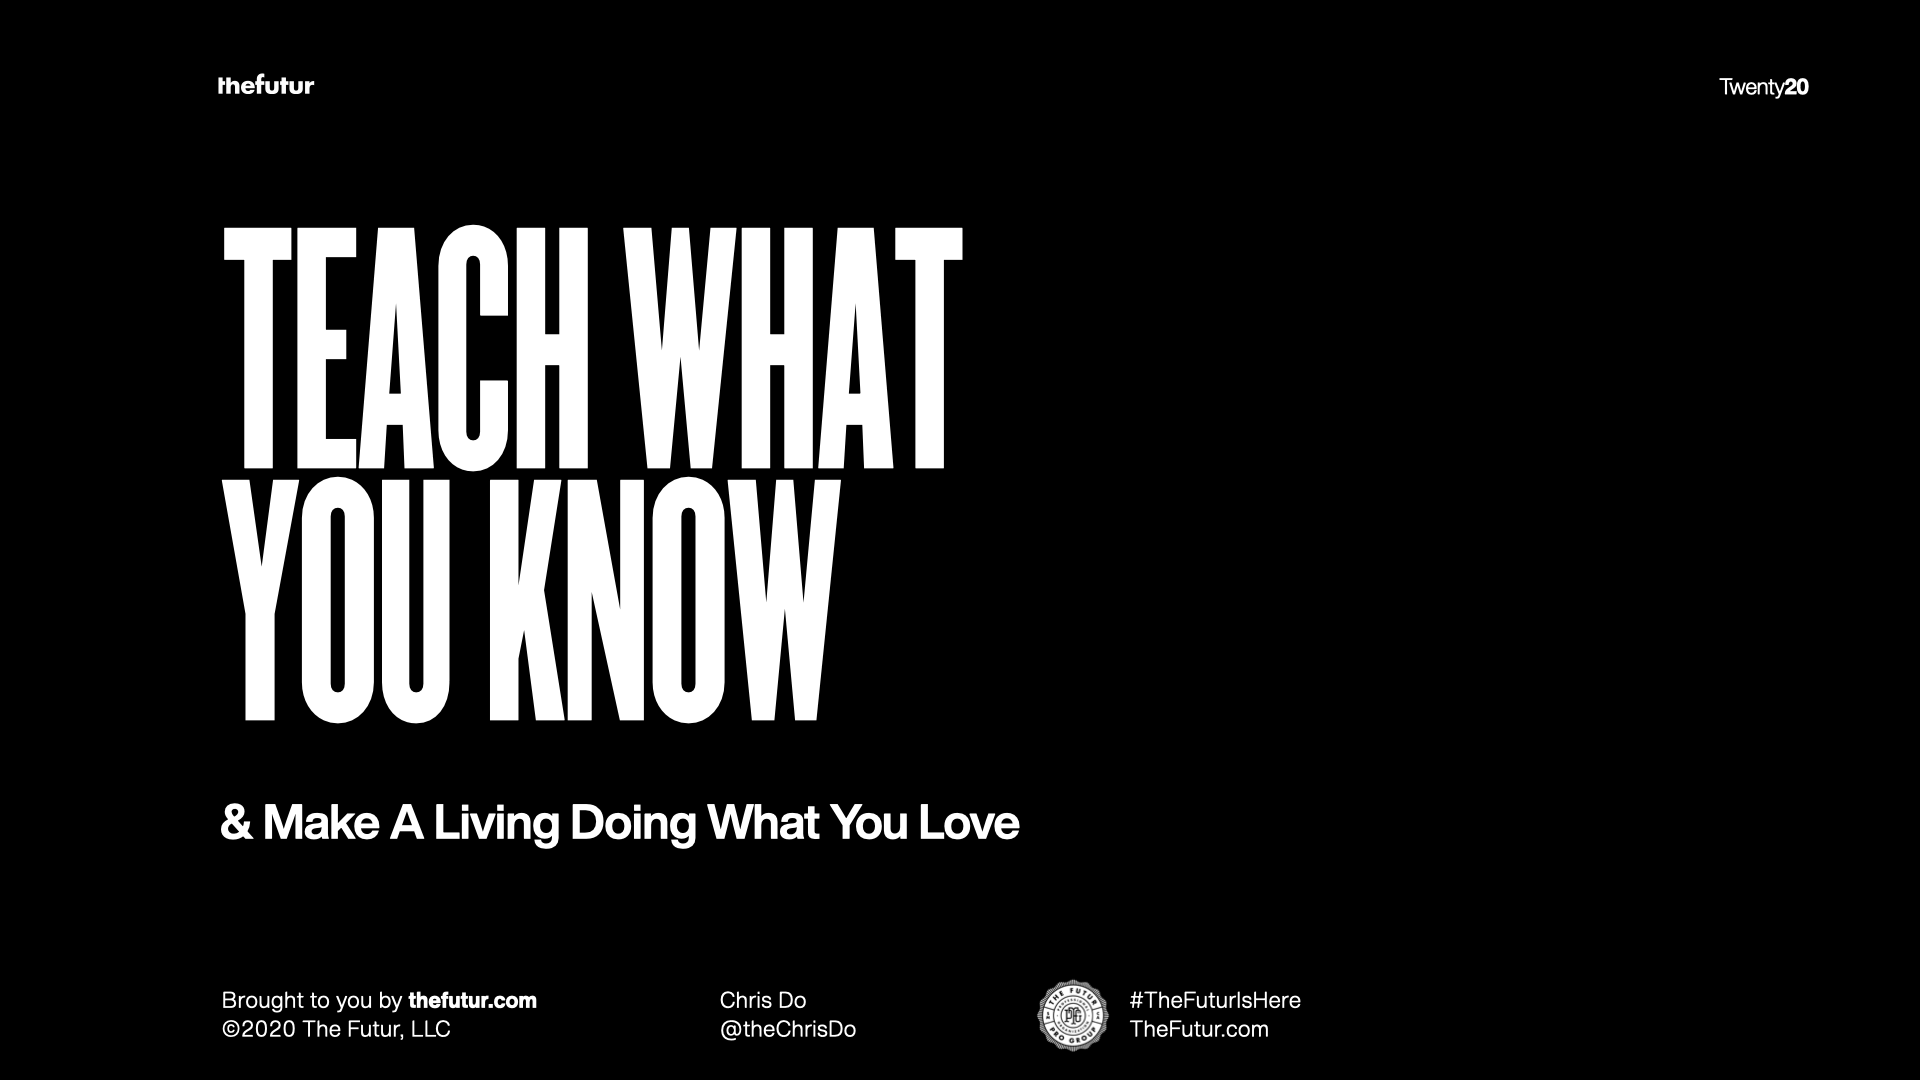 The Futur slide - Teach what you know and make a living doing what you love.